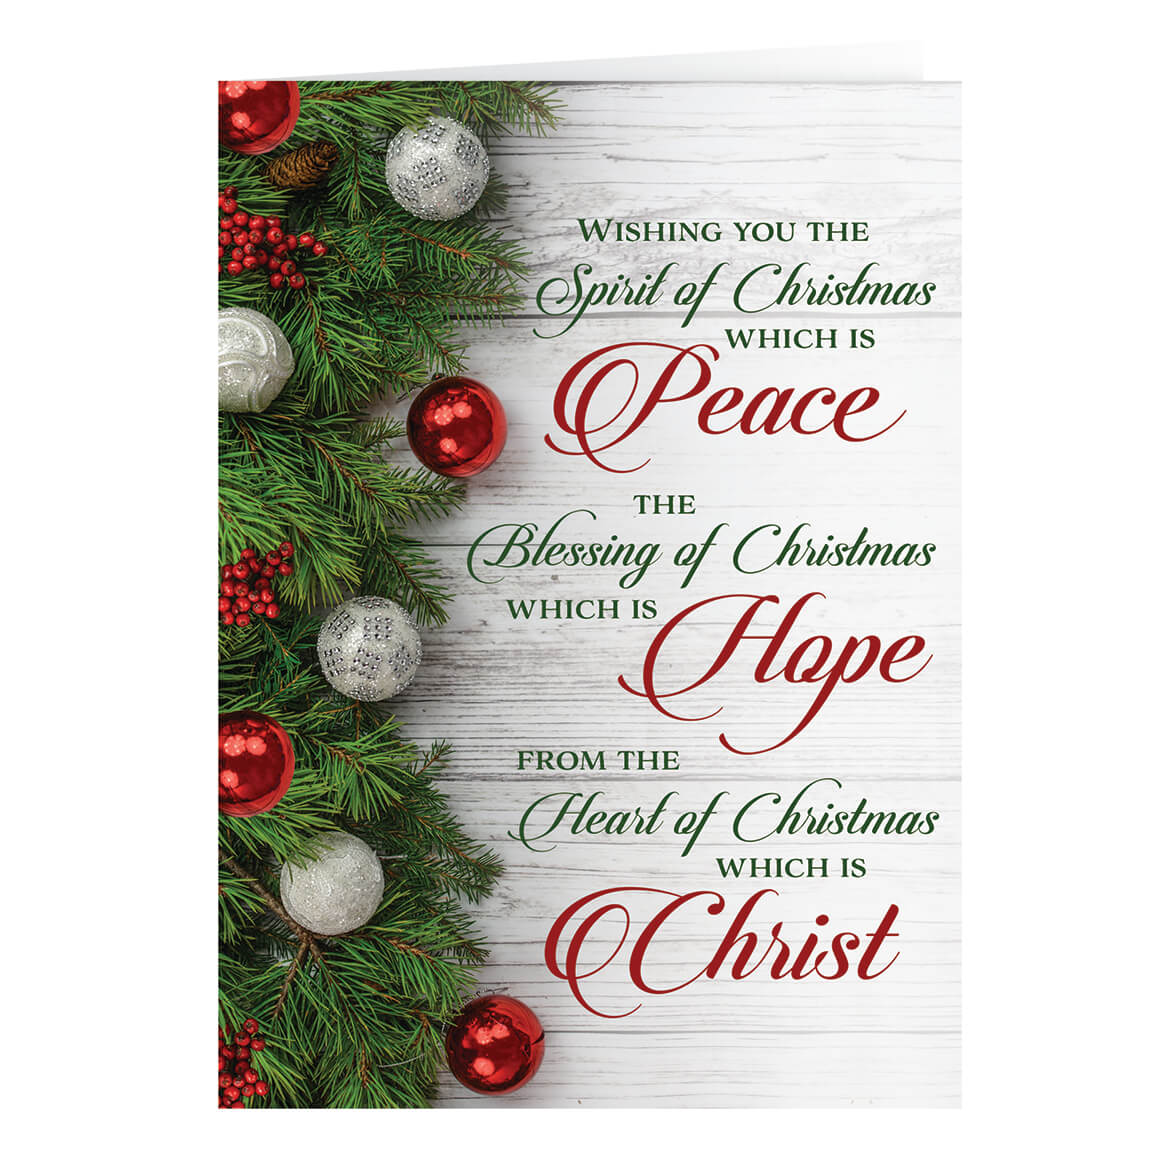 Peace, Hope, Christ -Personalized Christmas Card - Walter Drake